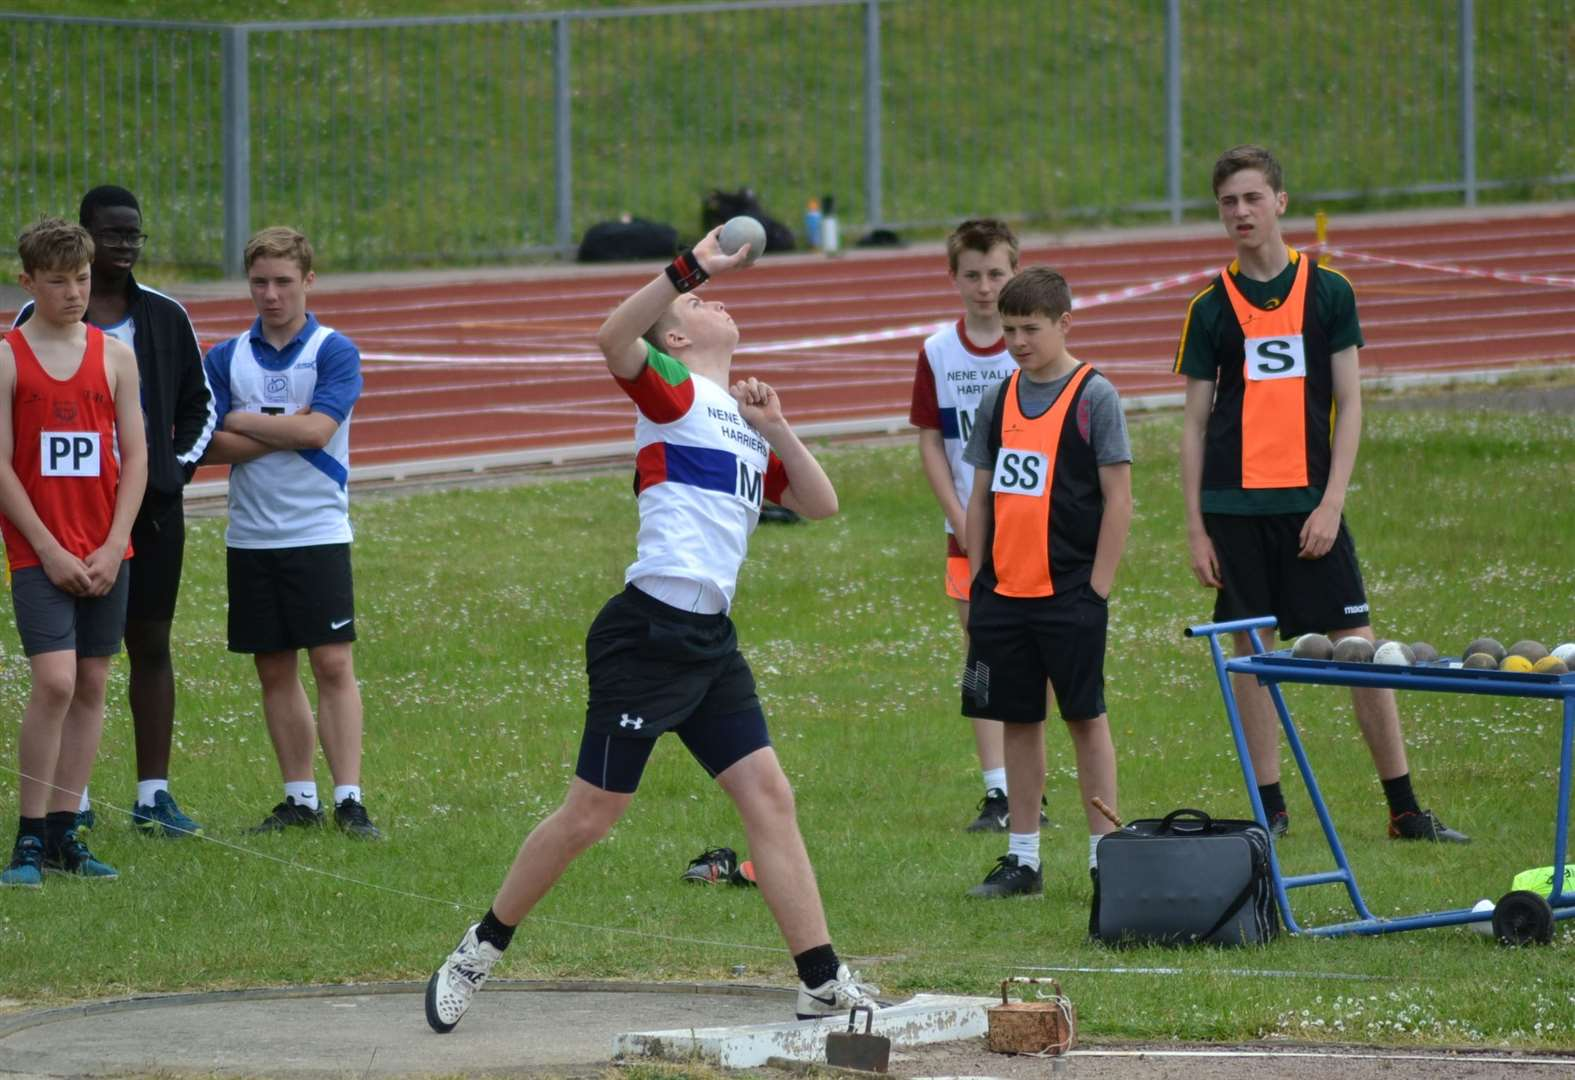 ATHLETICS: Schoolboy double success for Capes